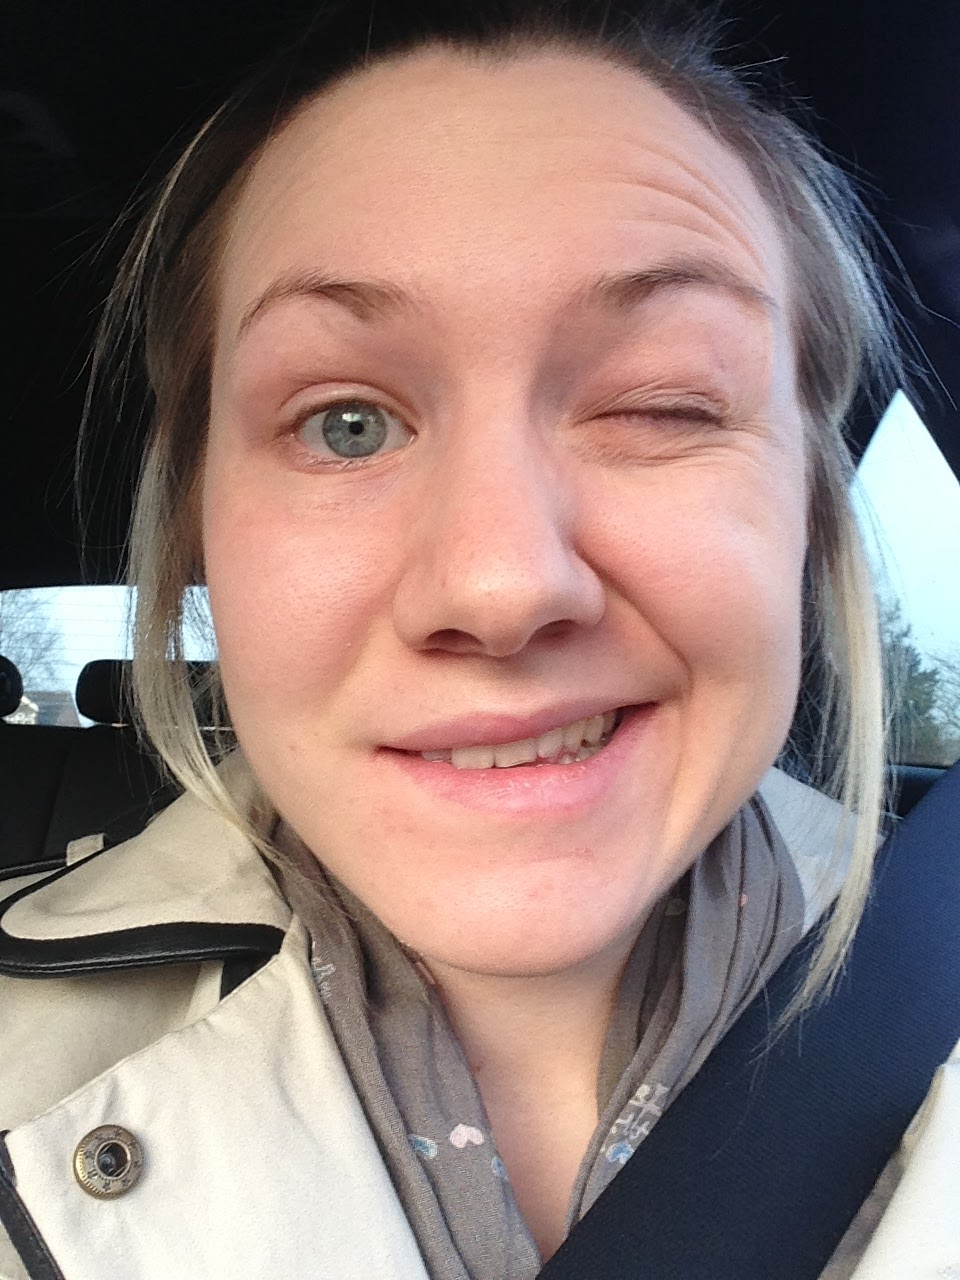 Rhia-lly nice things: The down low on Ramsay Hunt Syndrome (my story)